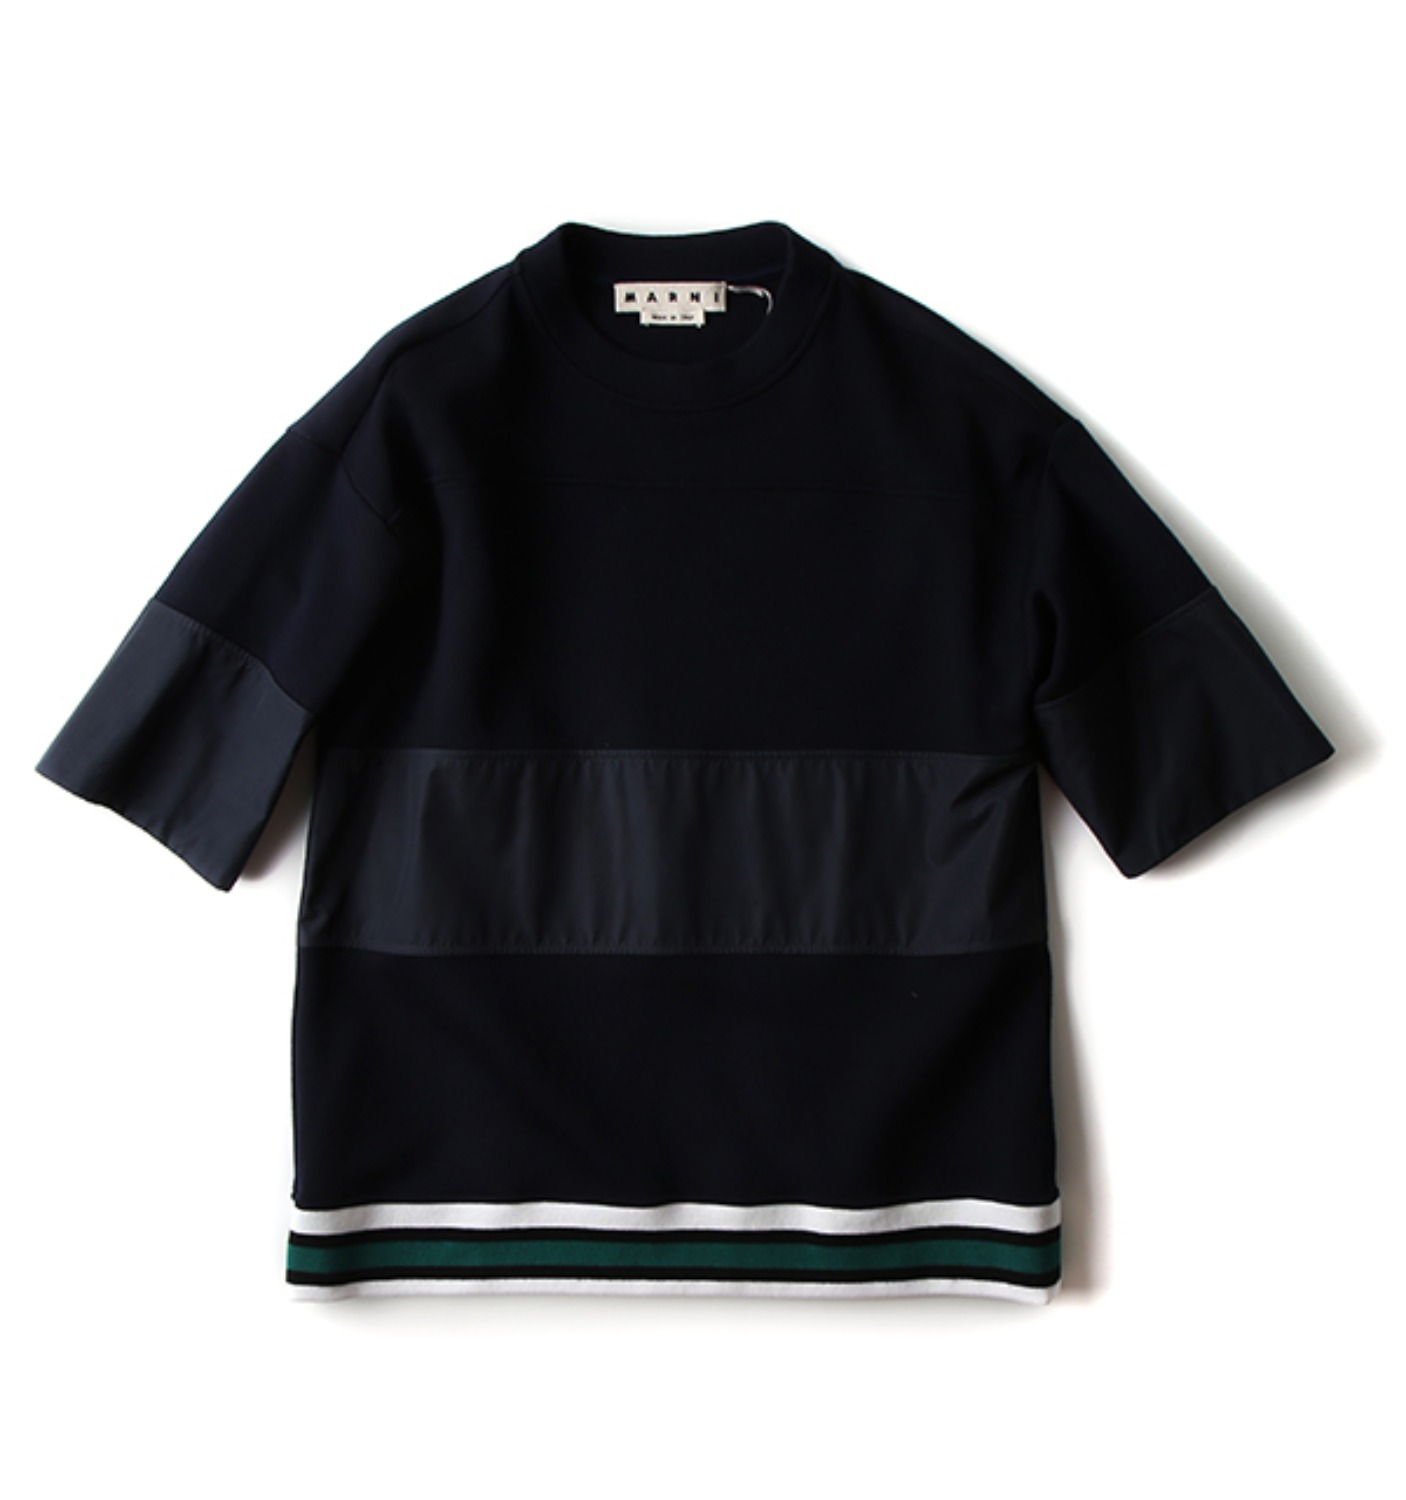 M/S SWEAT SHIRT NAVY(FUMUZGU037)